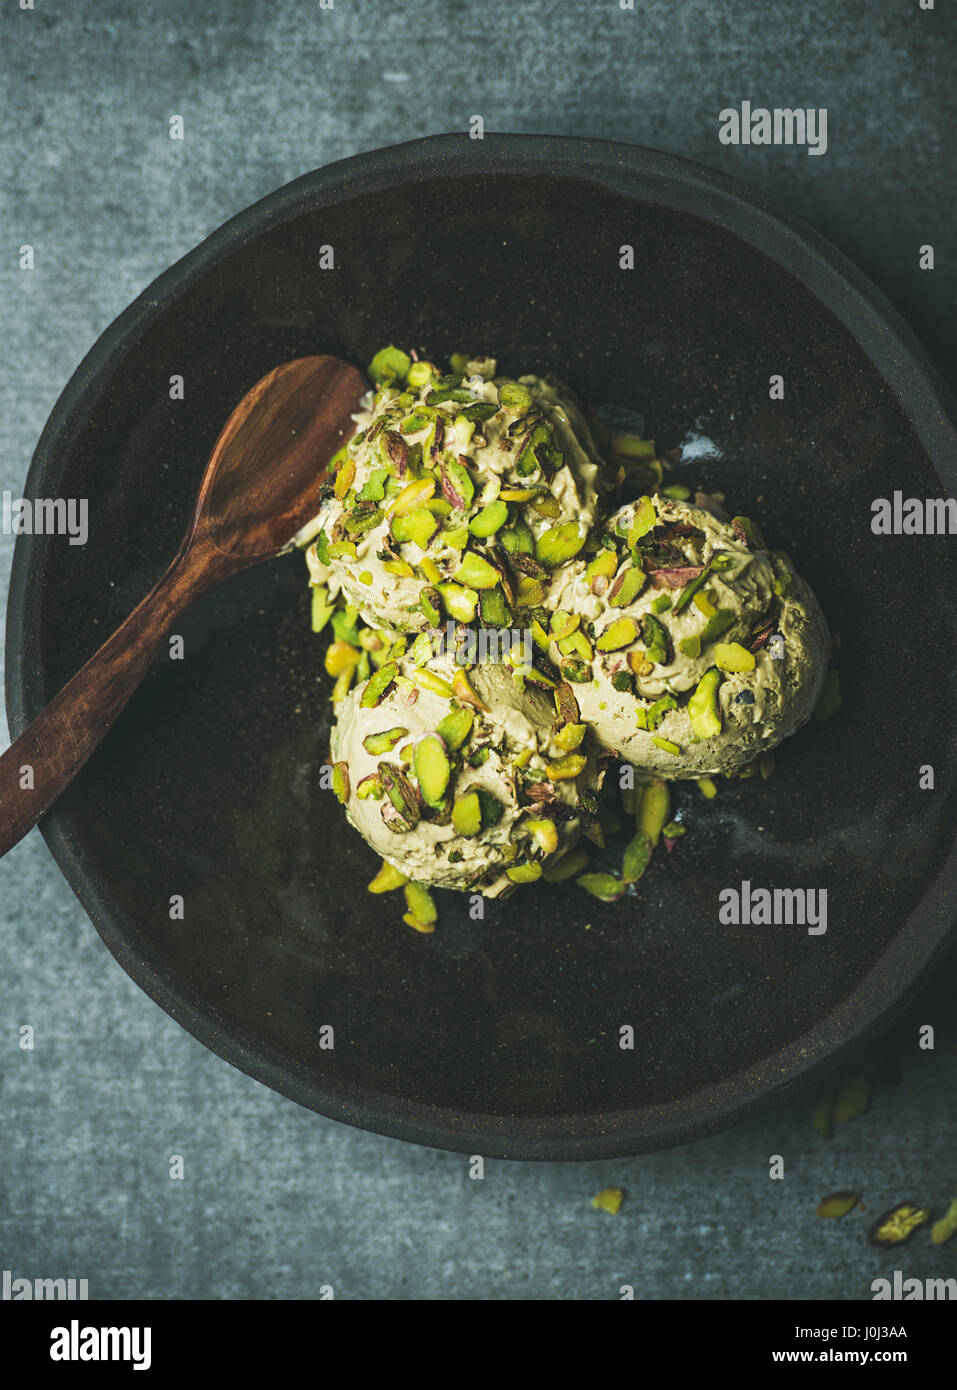 Homemade pistachio ice cream with crashed nuts in wooden plate - Stock Image